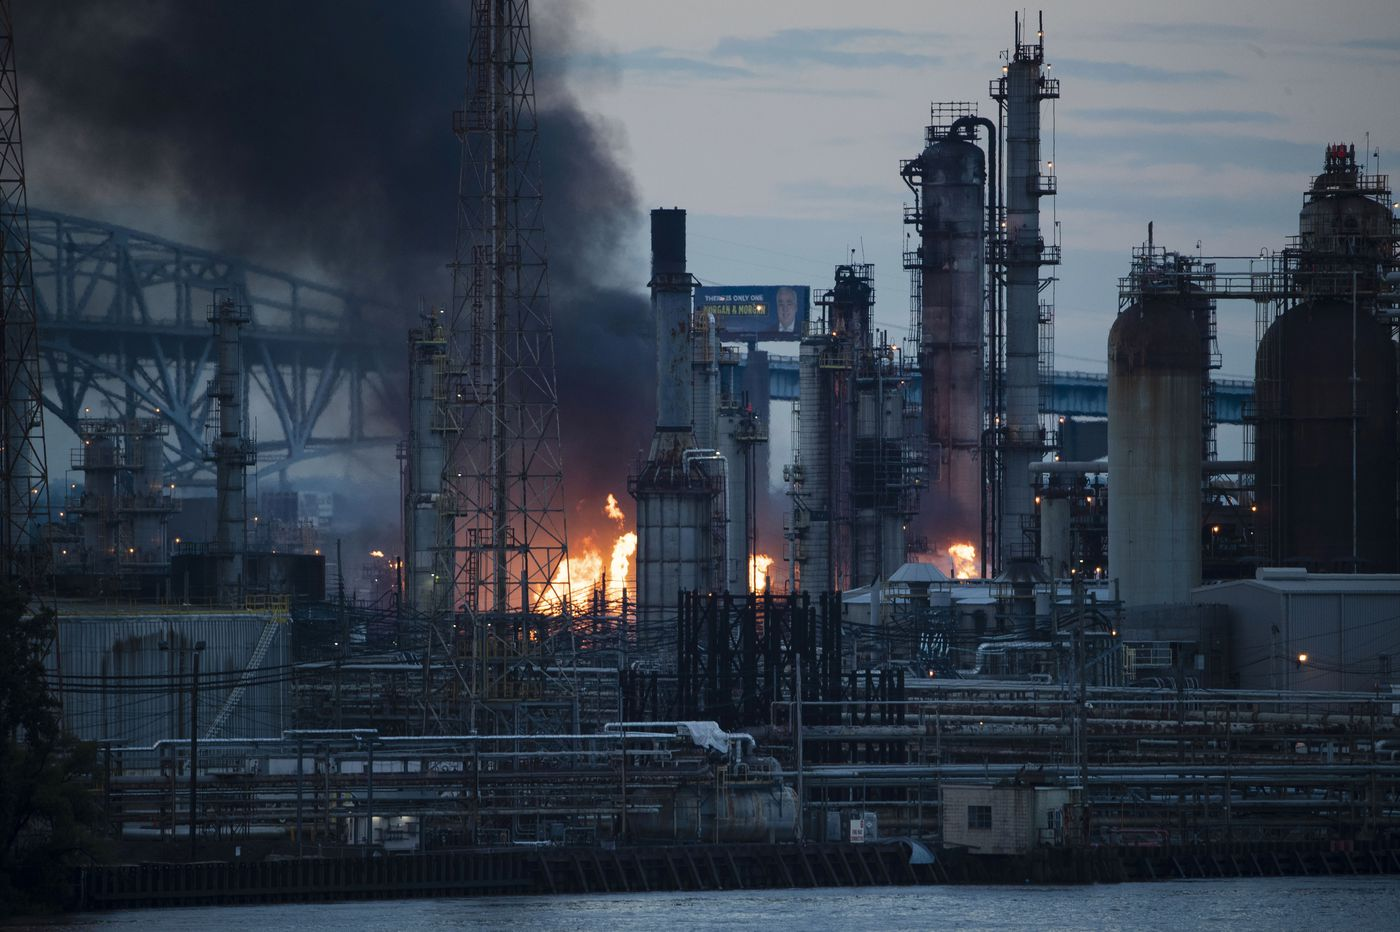 Philadelphia refinery hit with $132,000 fine for violations related to June fire